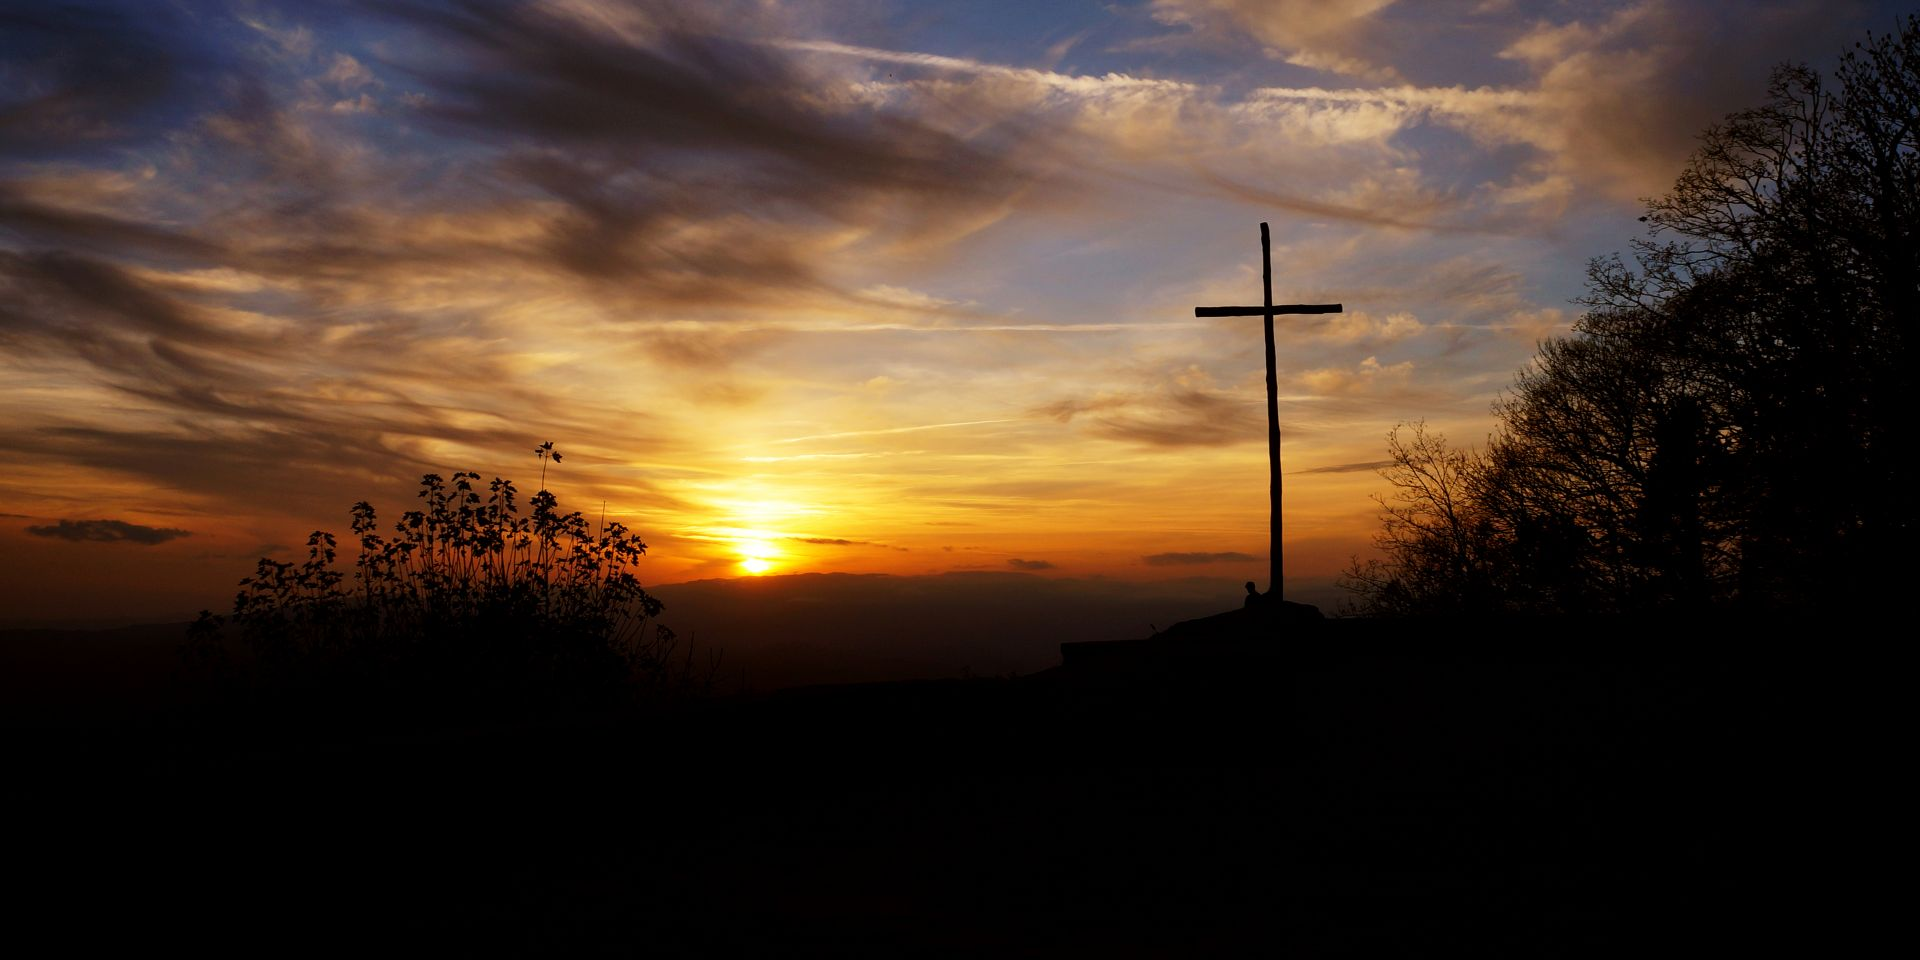 La cruz y el atardecer by Fray Foto (@frayfoto) | Cathopic